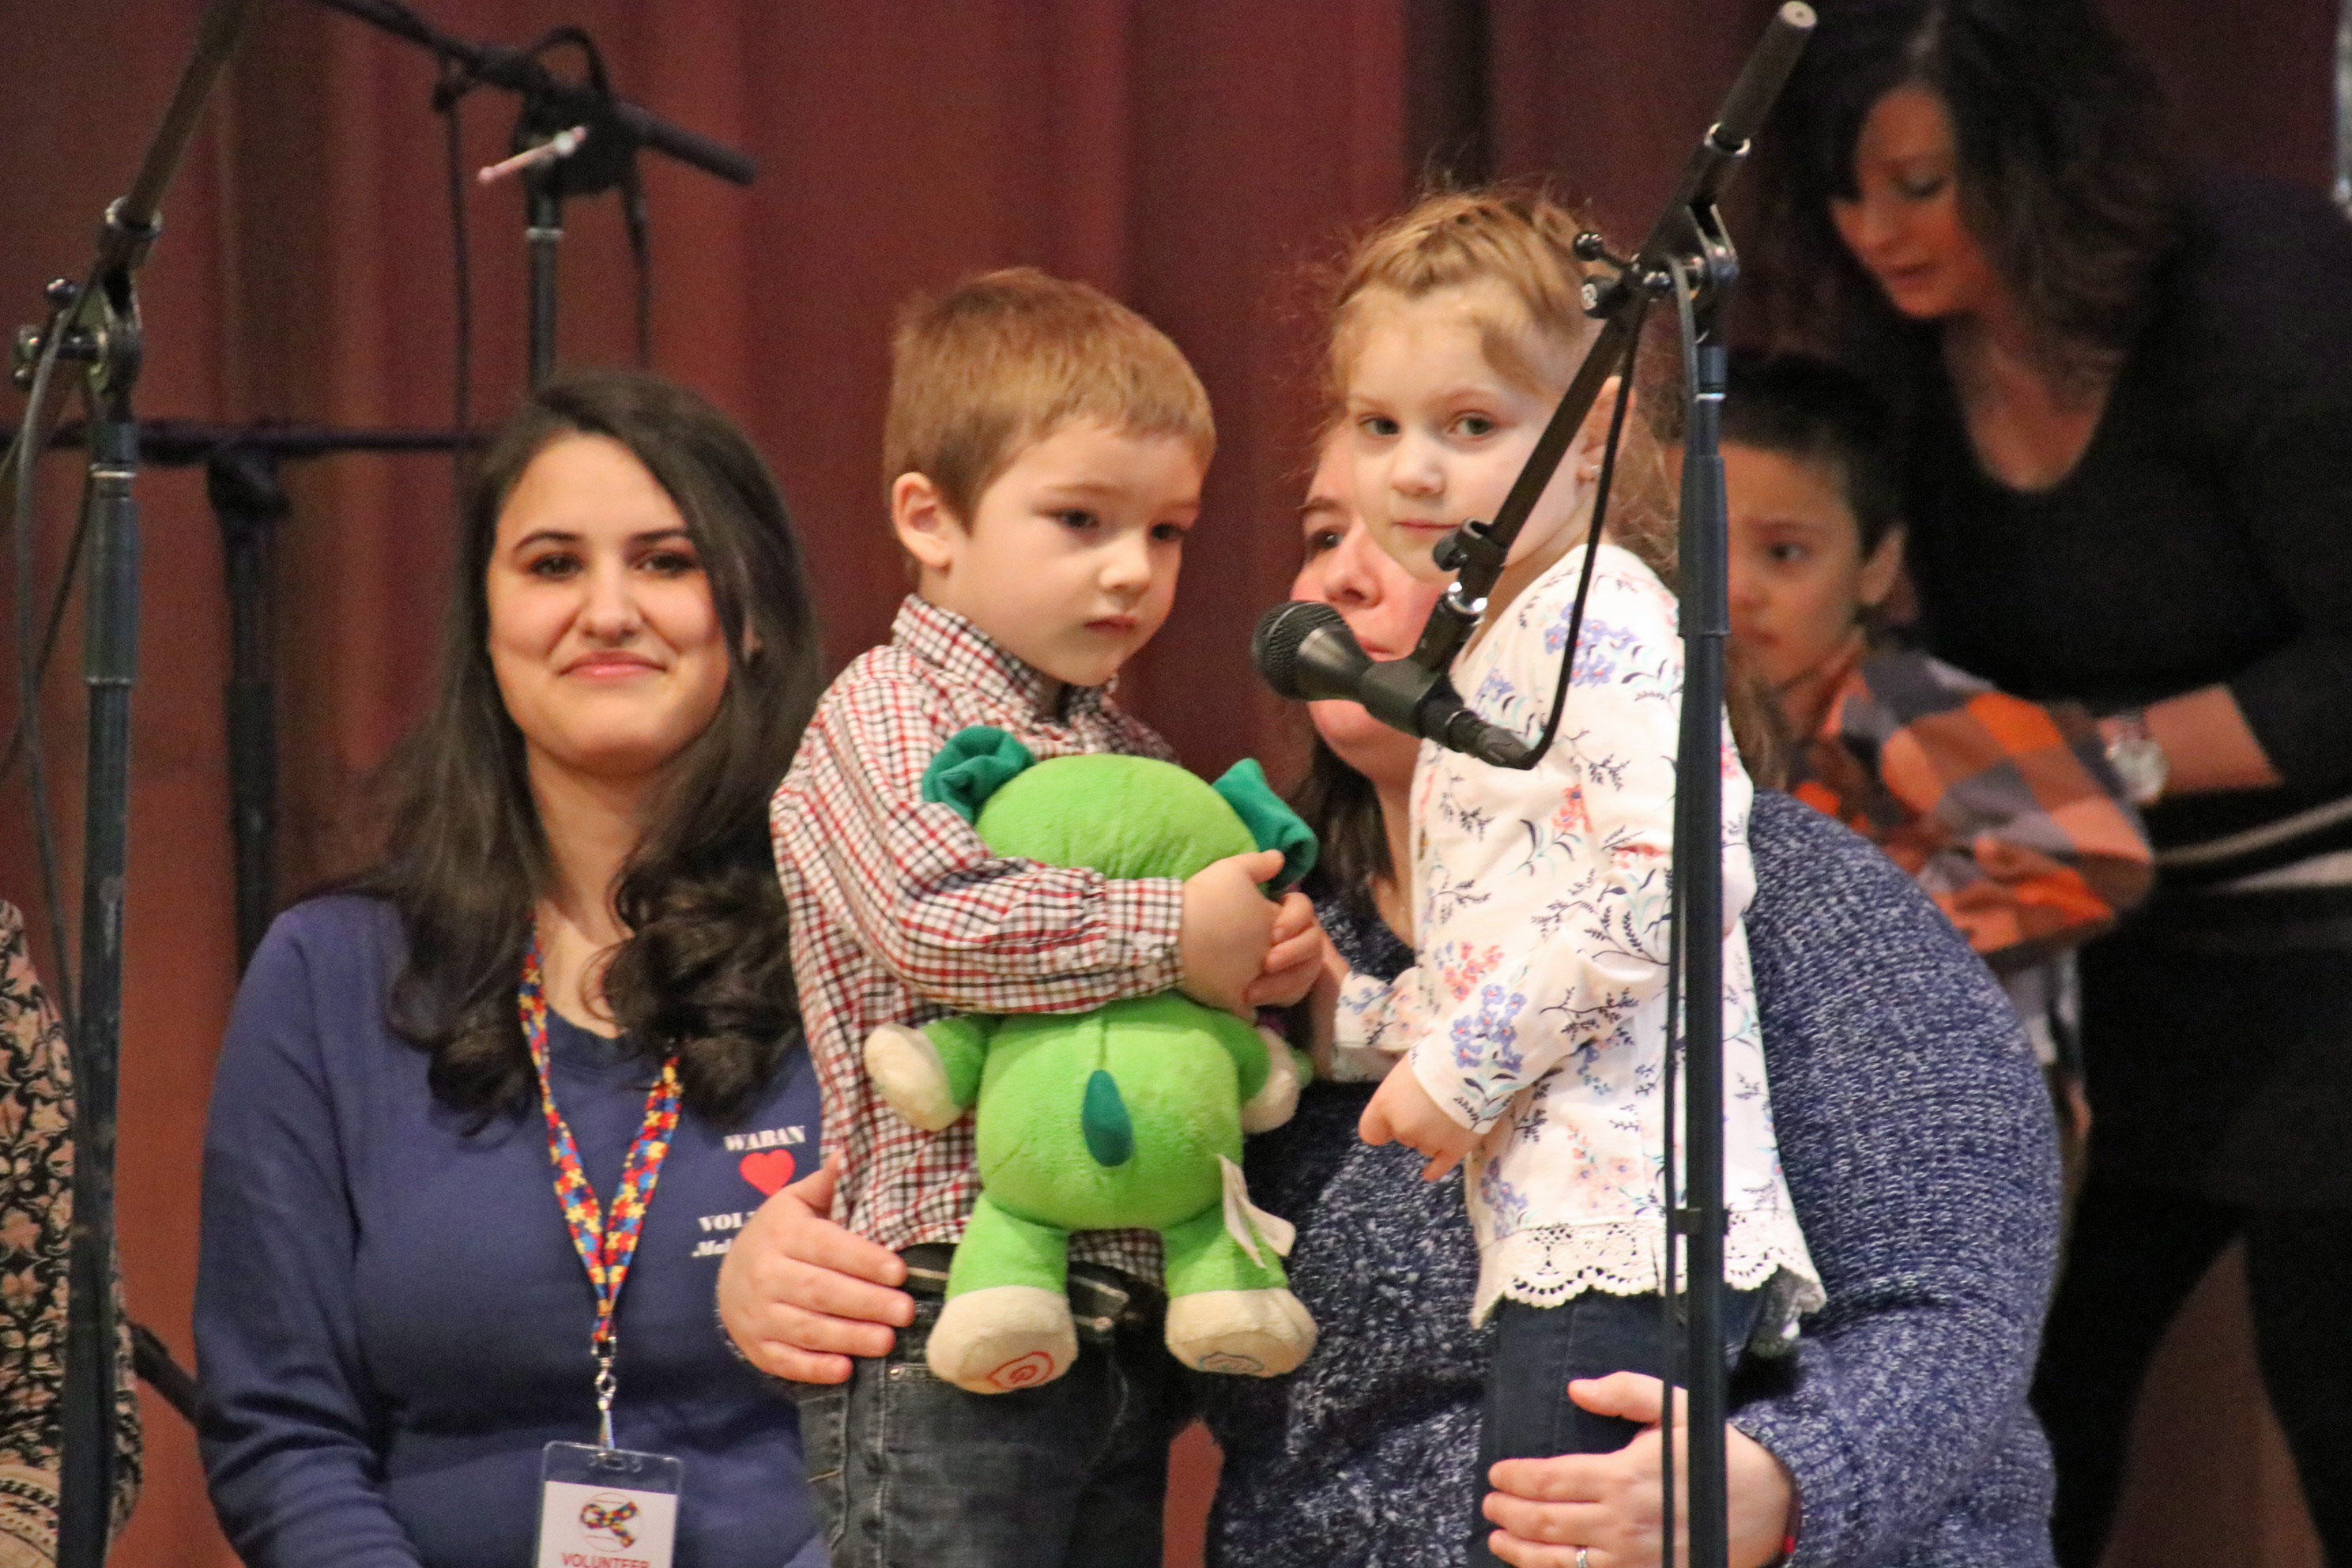 Noah Johnson, who attends Waban's preschool program, and his cousin Haley Eddows were on stage at St. Ignatius Gym at the Waban Telethon Saturday. The Telethon raised more than $88,000, which will go towards a new autism wing at the Fraser-Ford Child Development Center. TAMMY WELLS/Journal /Tribune